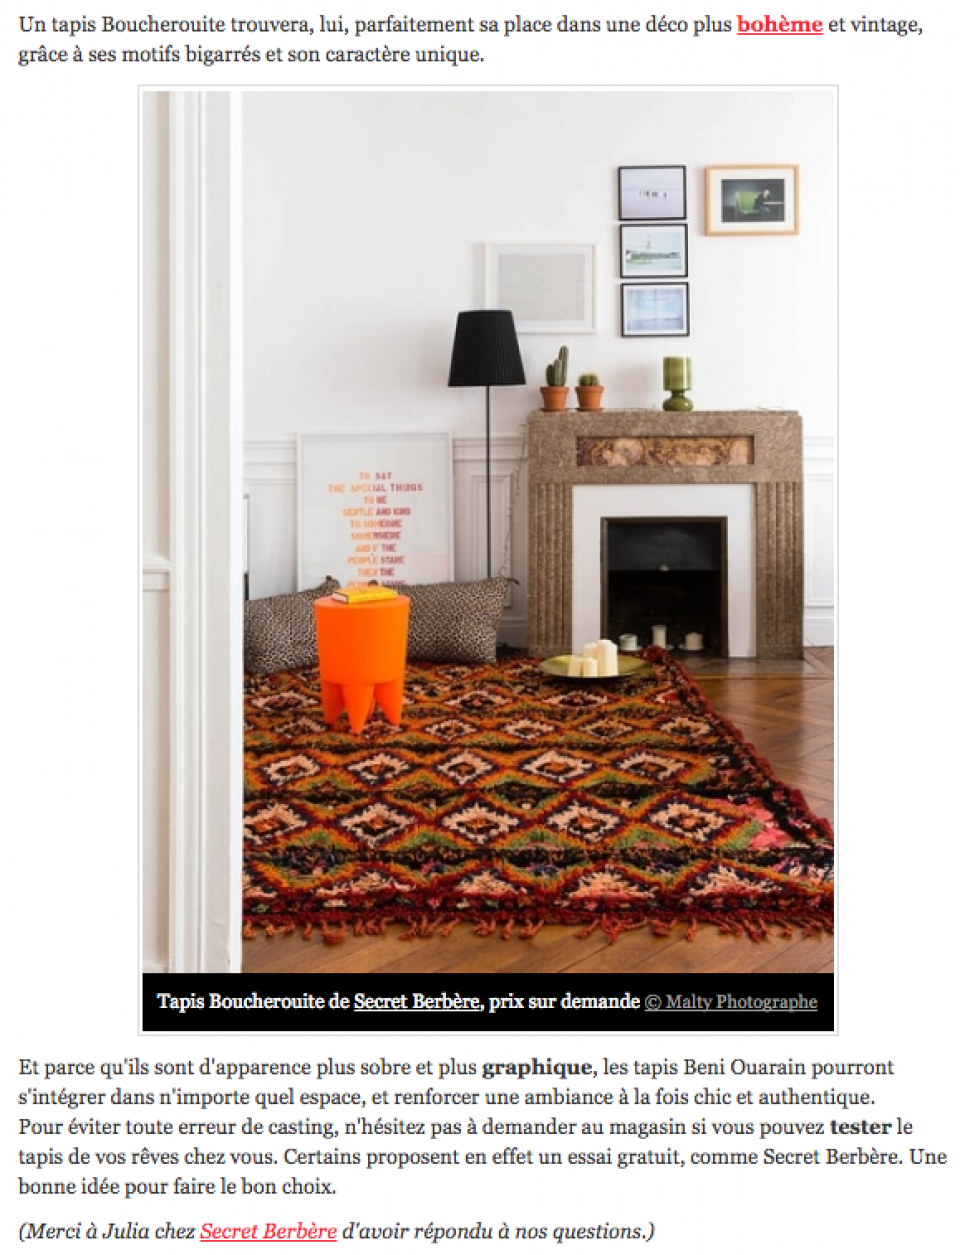 Supérieur Le Journal Des Femmes Deco #12: Berber Rugs And Kilims : How To Integrate Ethnic Rugs In Interior ? Http:// Deco.journaldesfemmes.com/mur-sol/1558569-tapis-ethnique/#